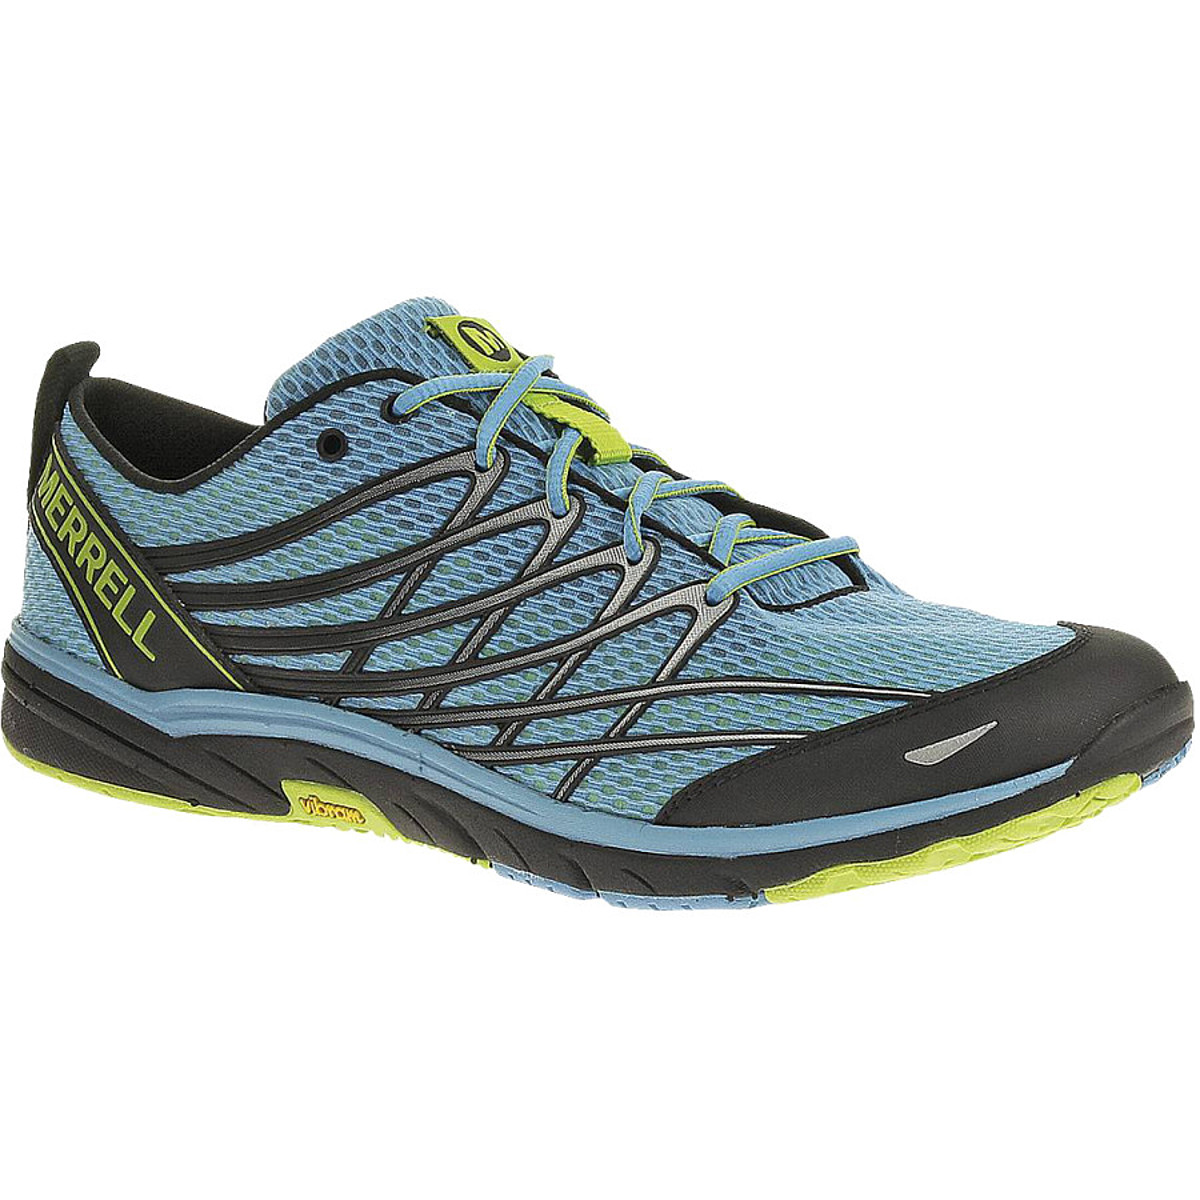 Merrell Barefoot Run Bare Access 3